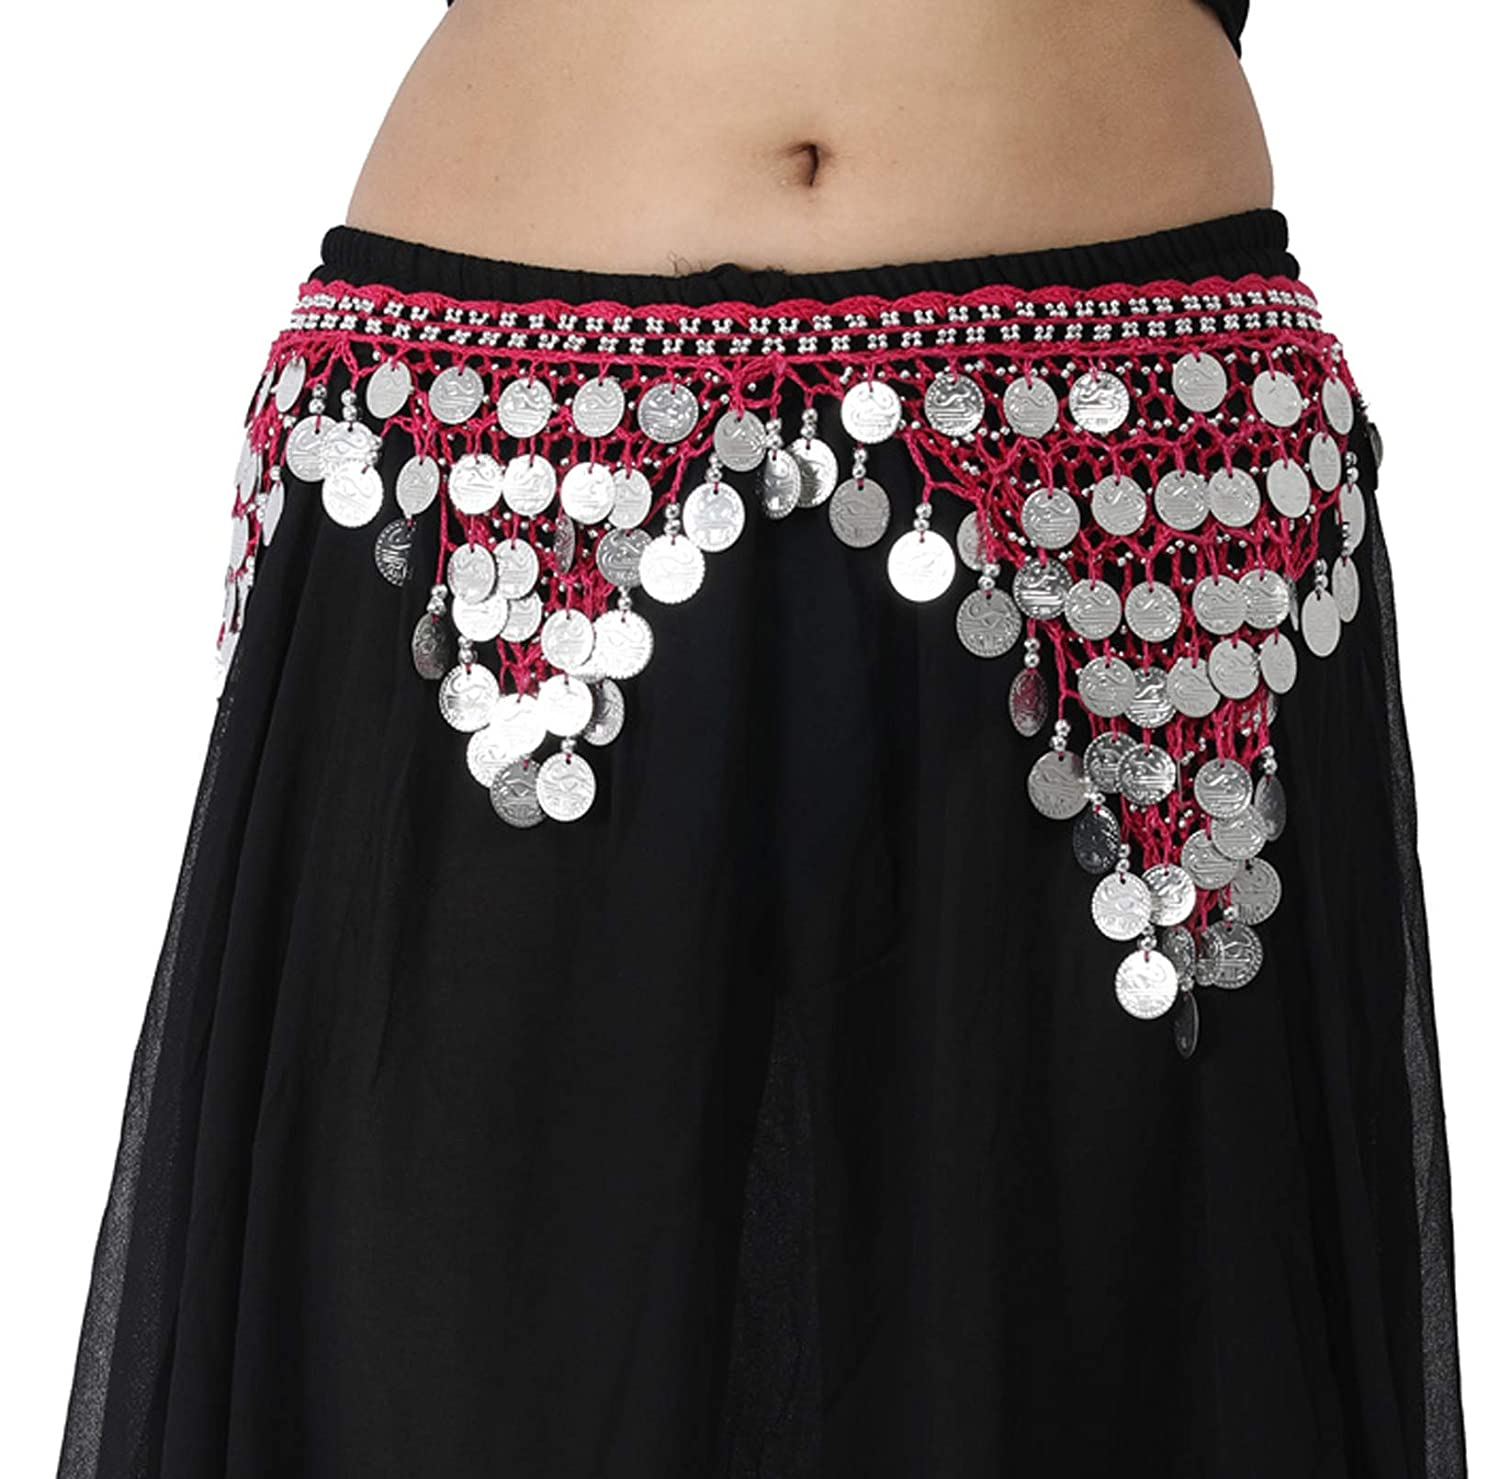 Wevez Classic Belly Dancing Silver Coin Hip Scarves for Gypsy Tribal Belly Dancers